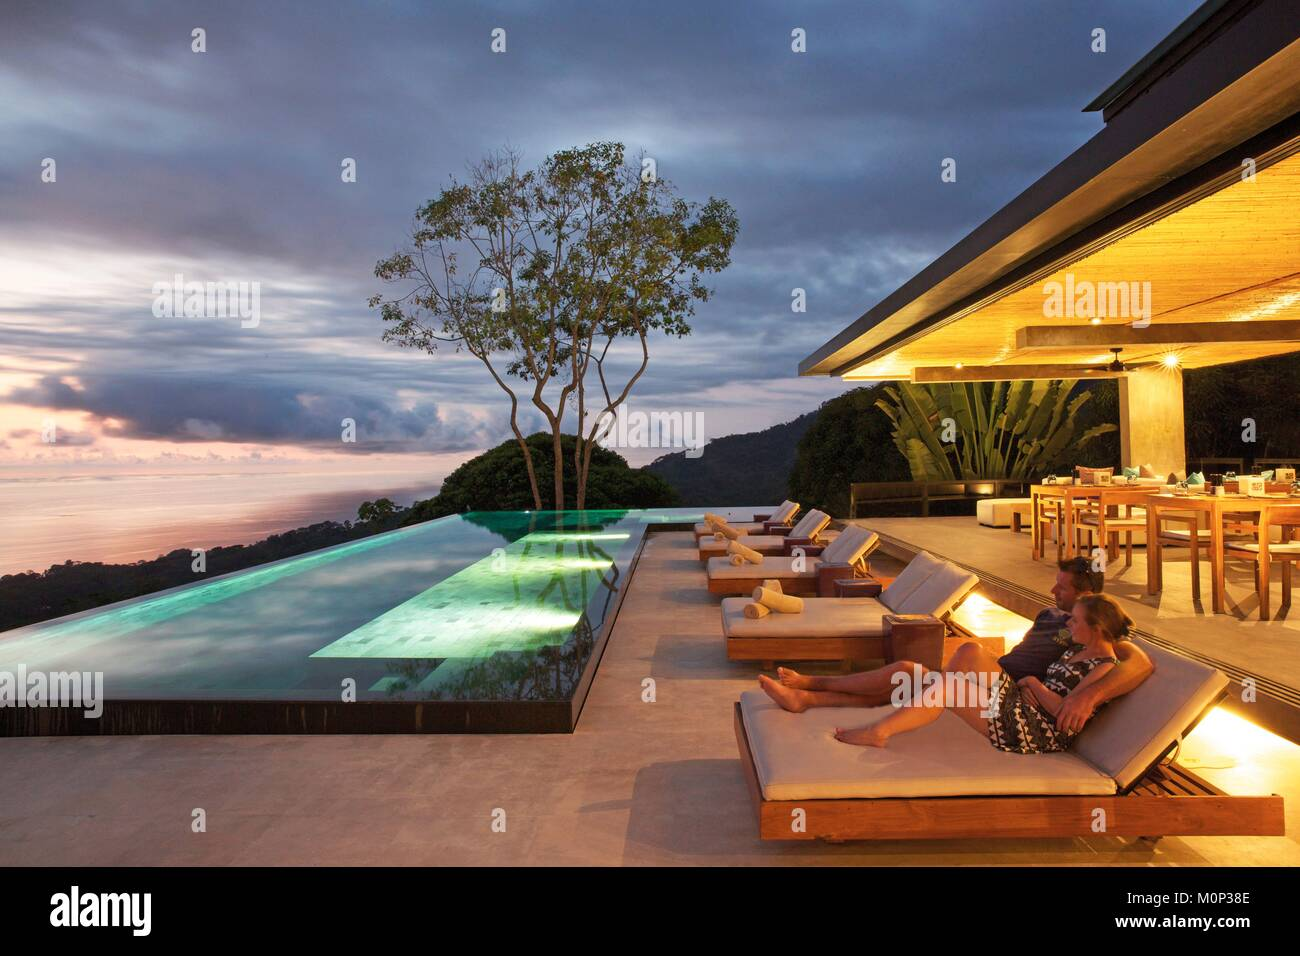 Good Costa Rica,Osa Peninsula,couple In A Transat In Front Of The Pool Of